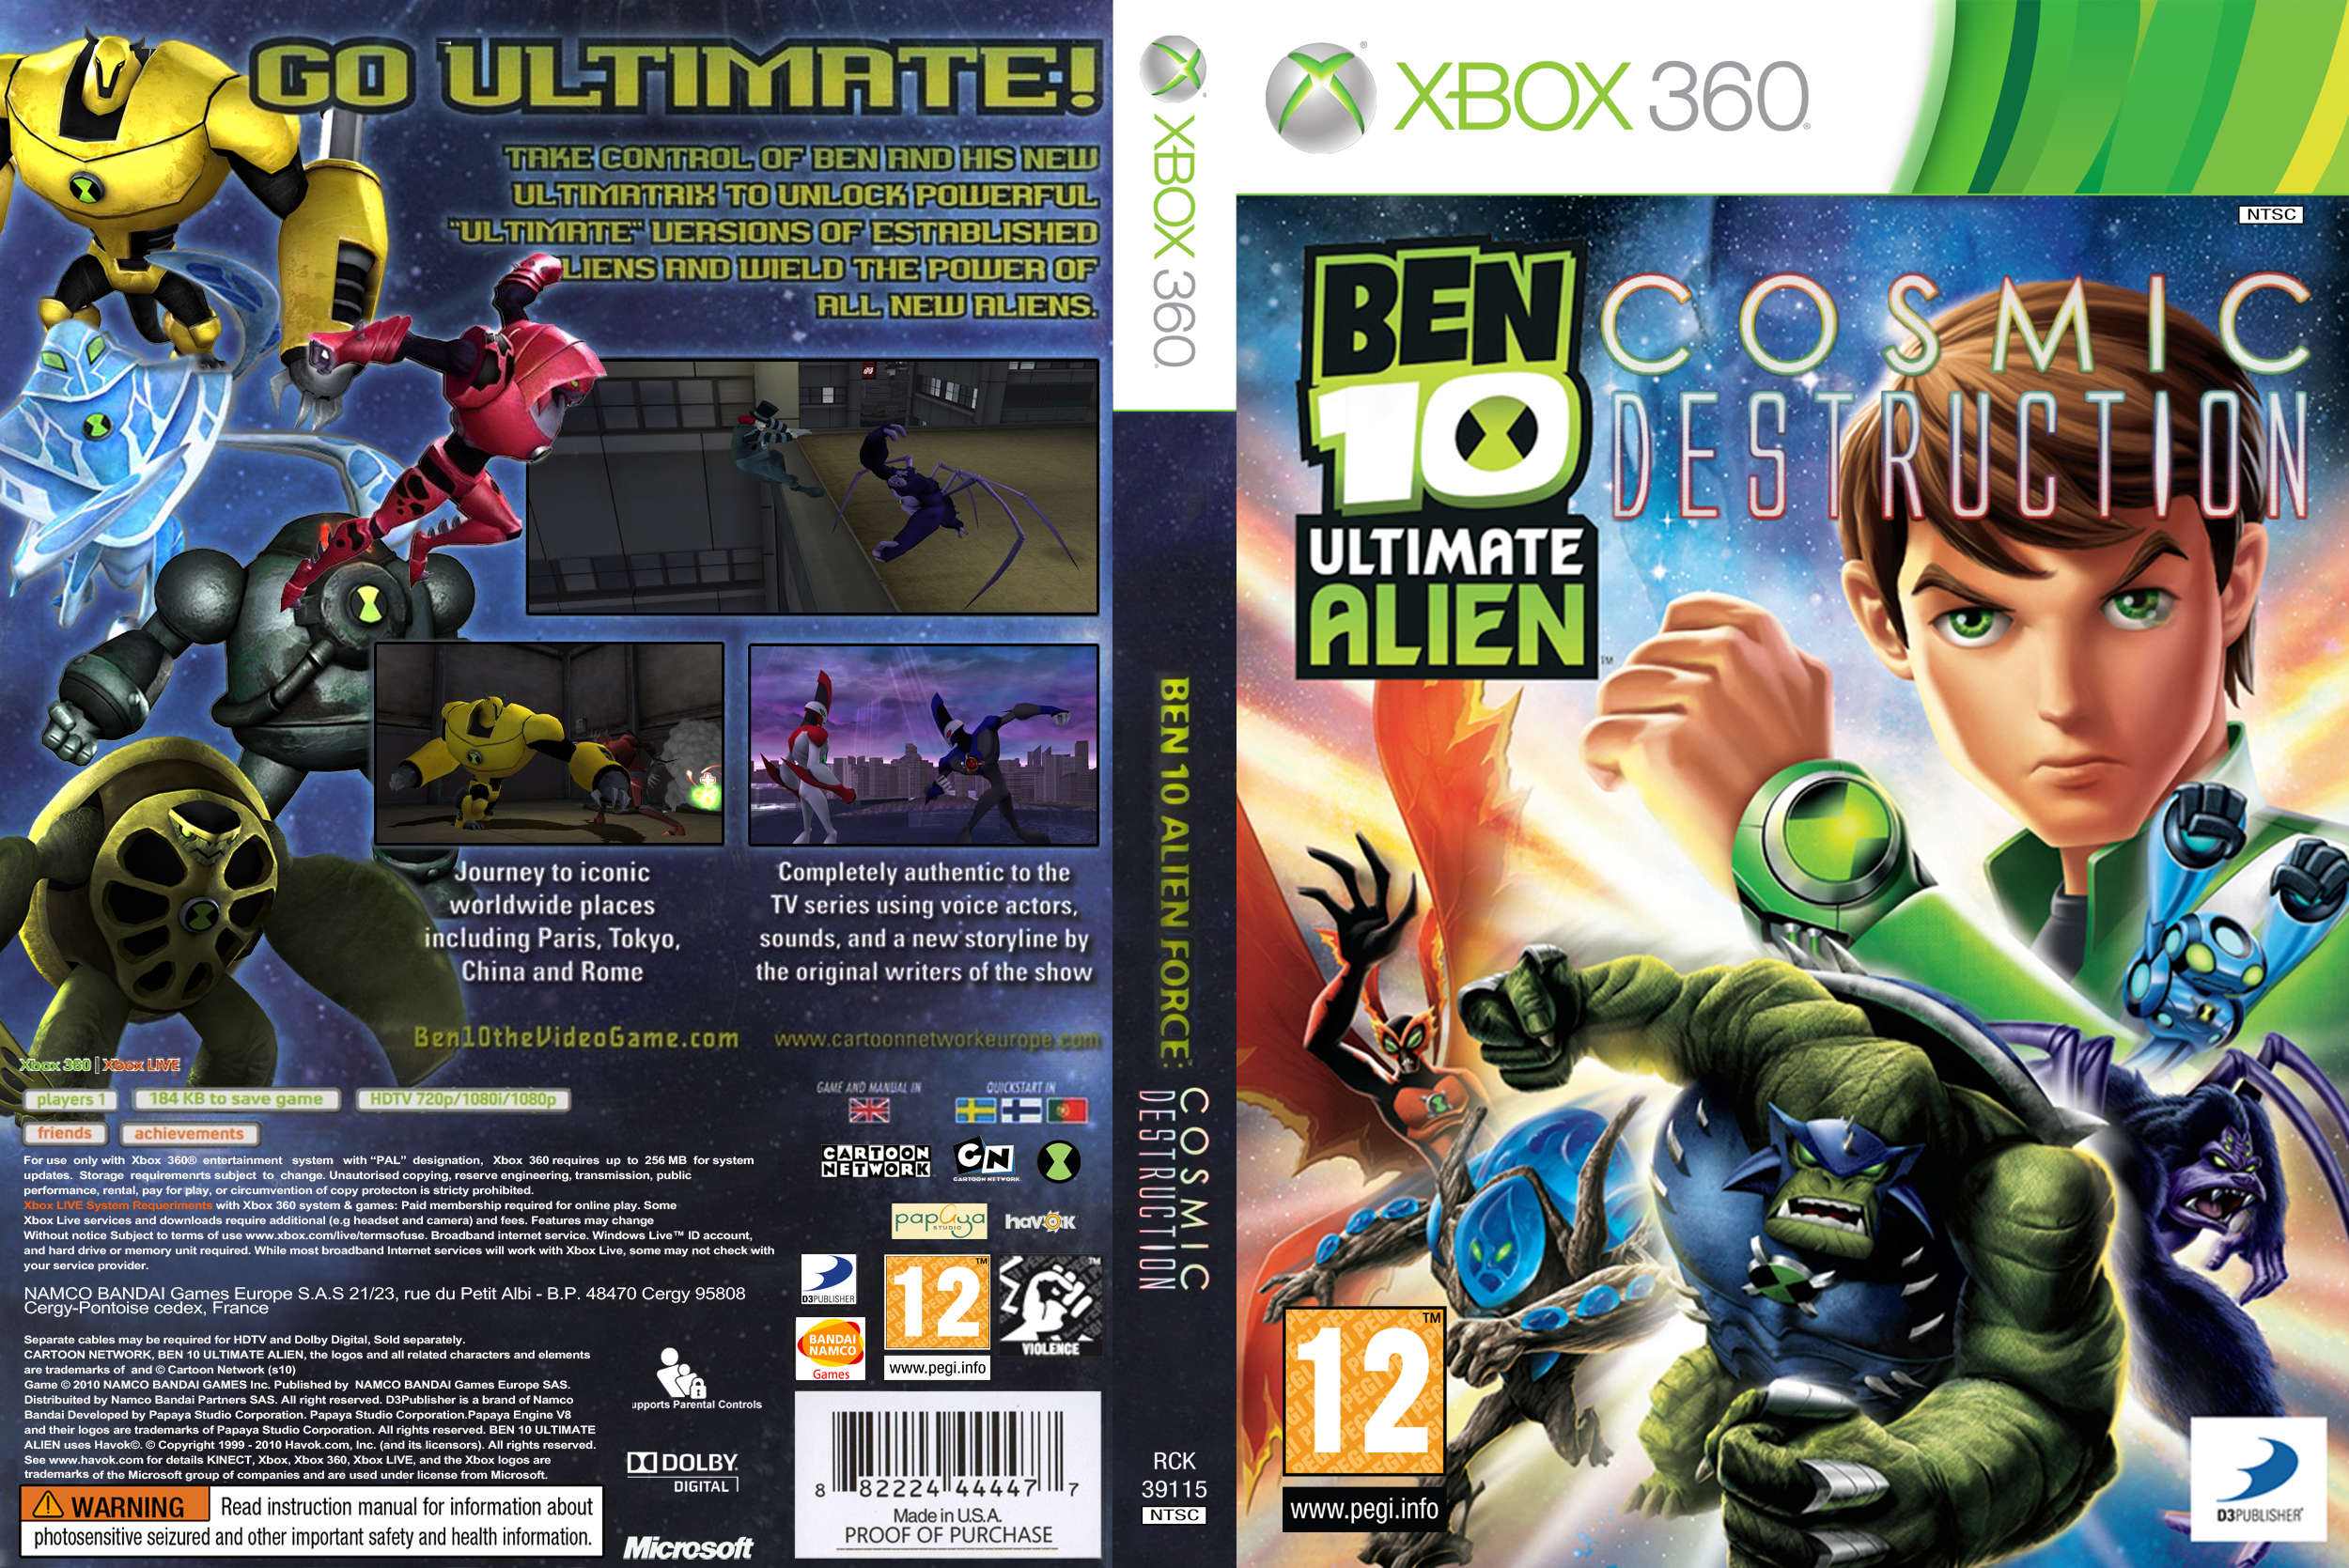 Ben10UltimateAlienCosmicDestruction